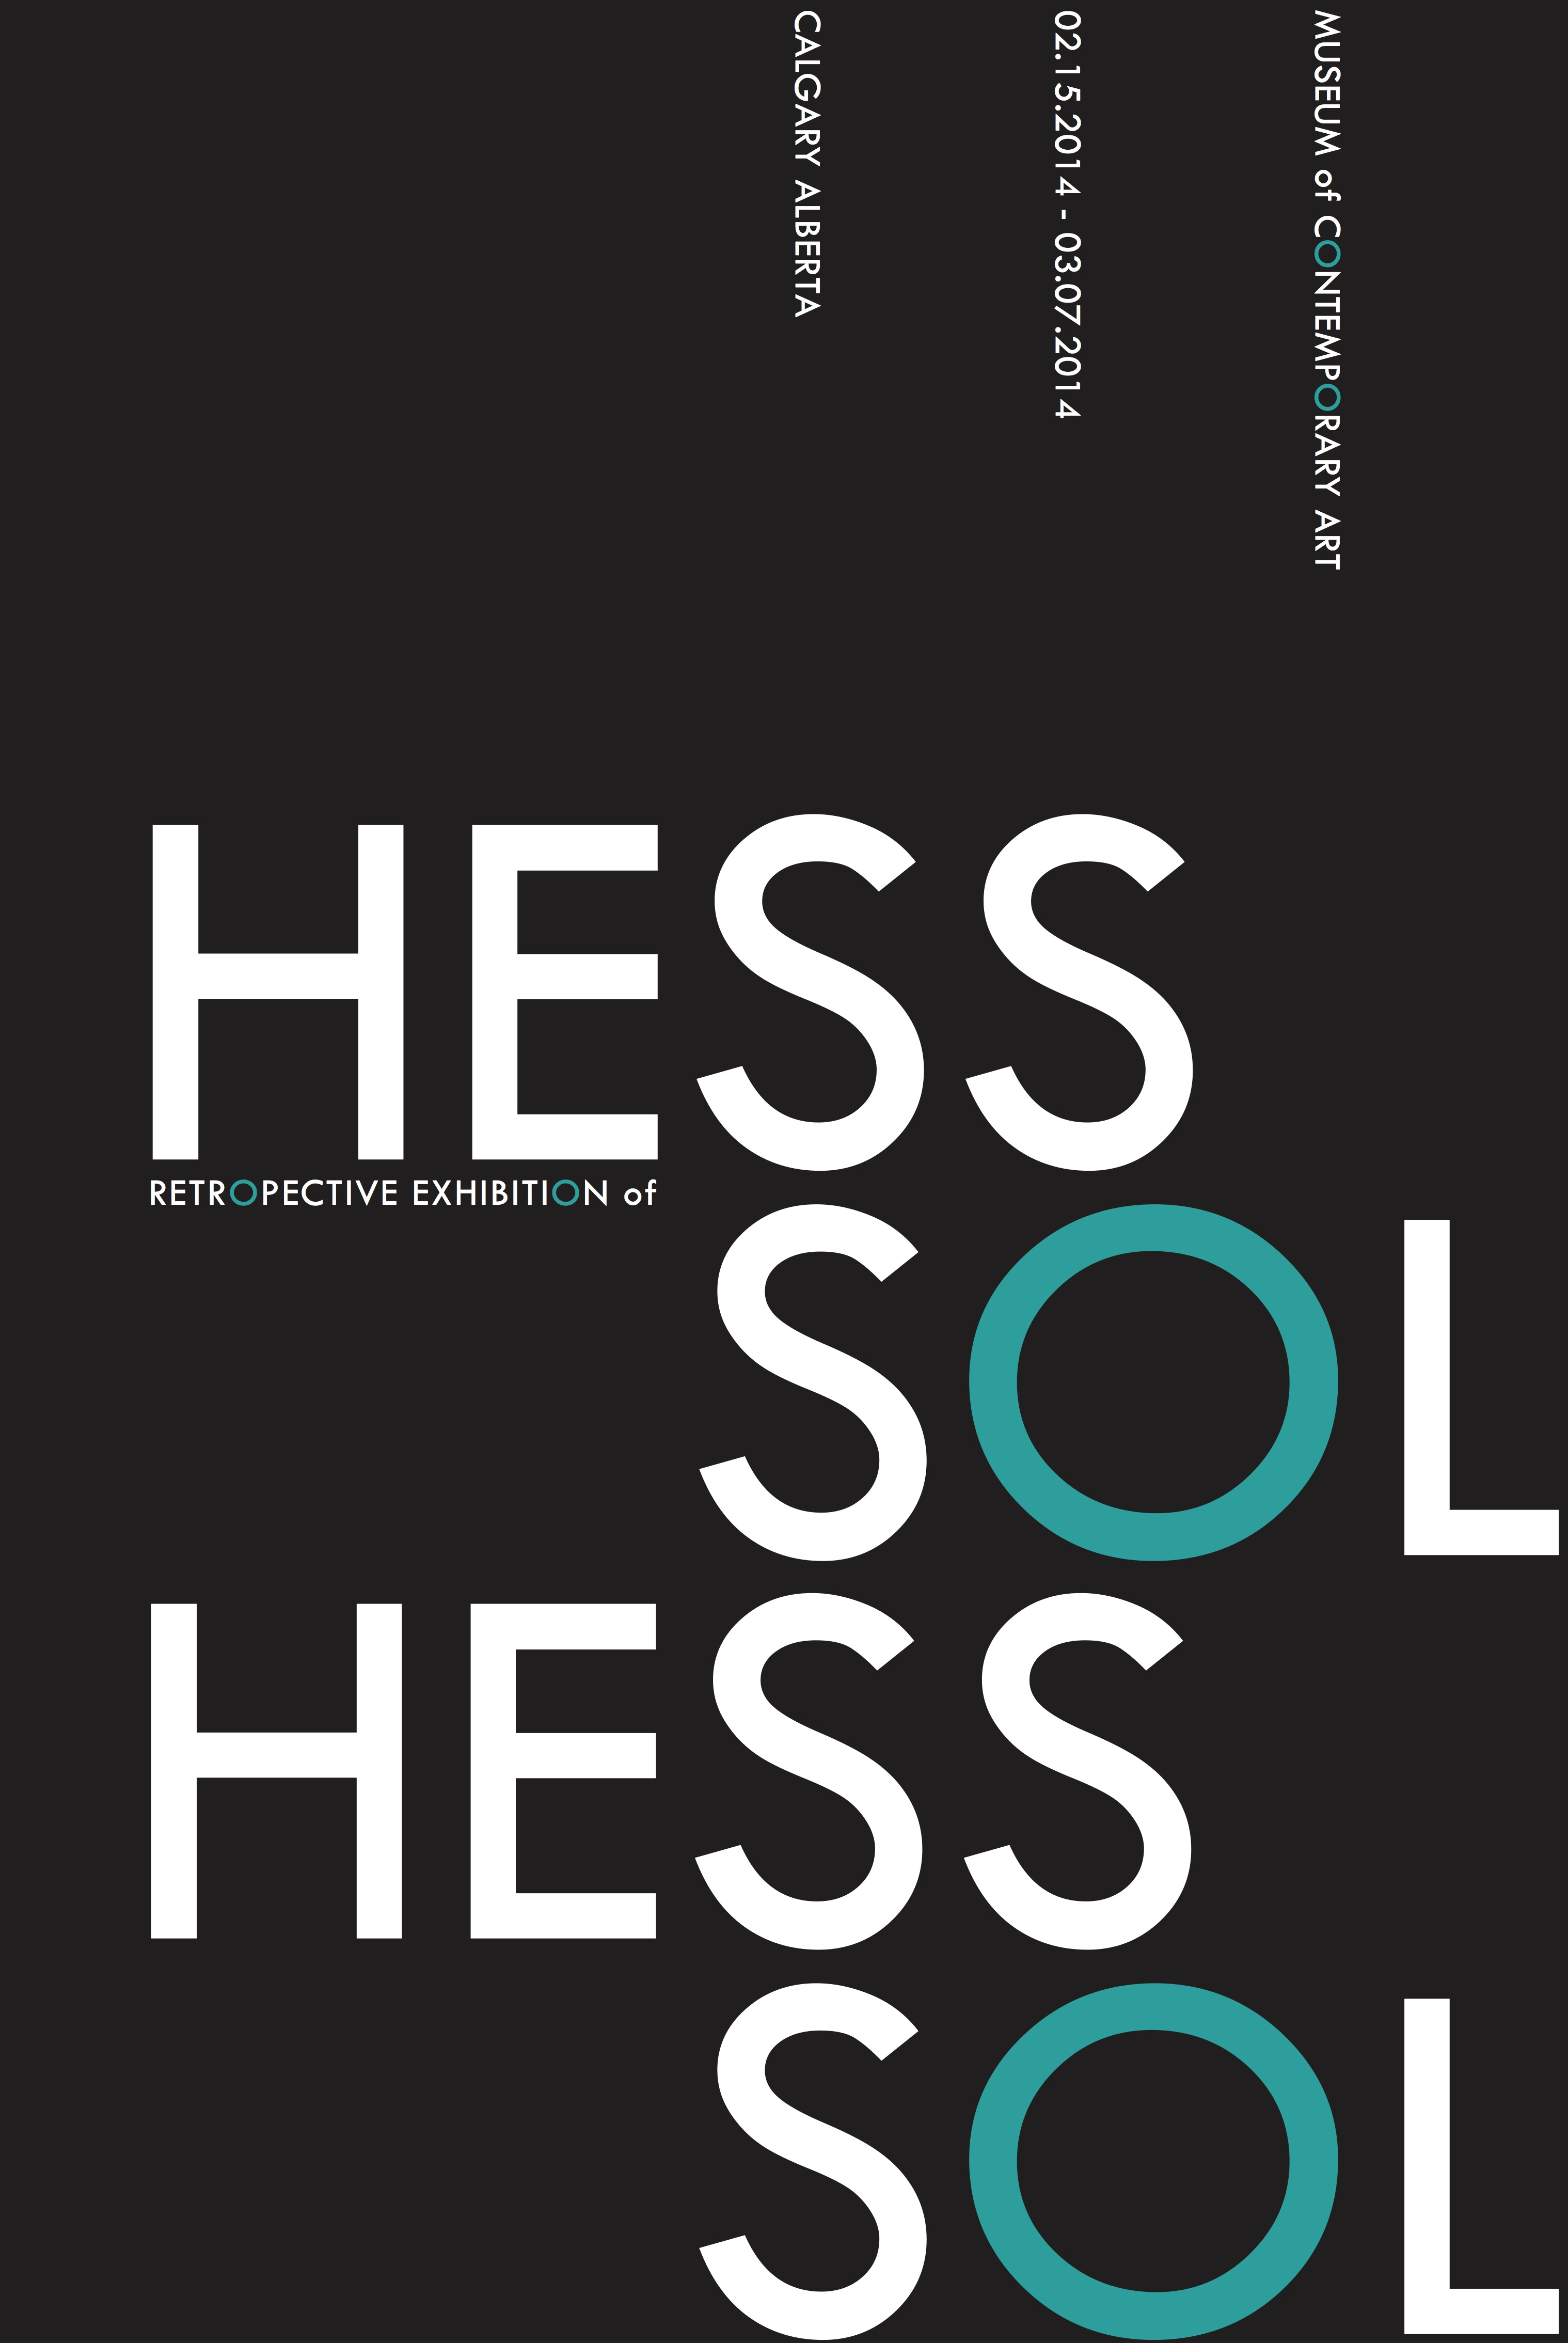 Hess Sol Expo